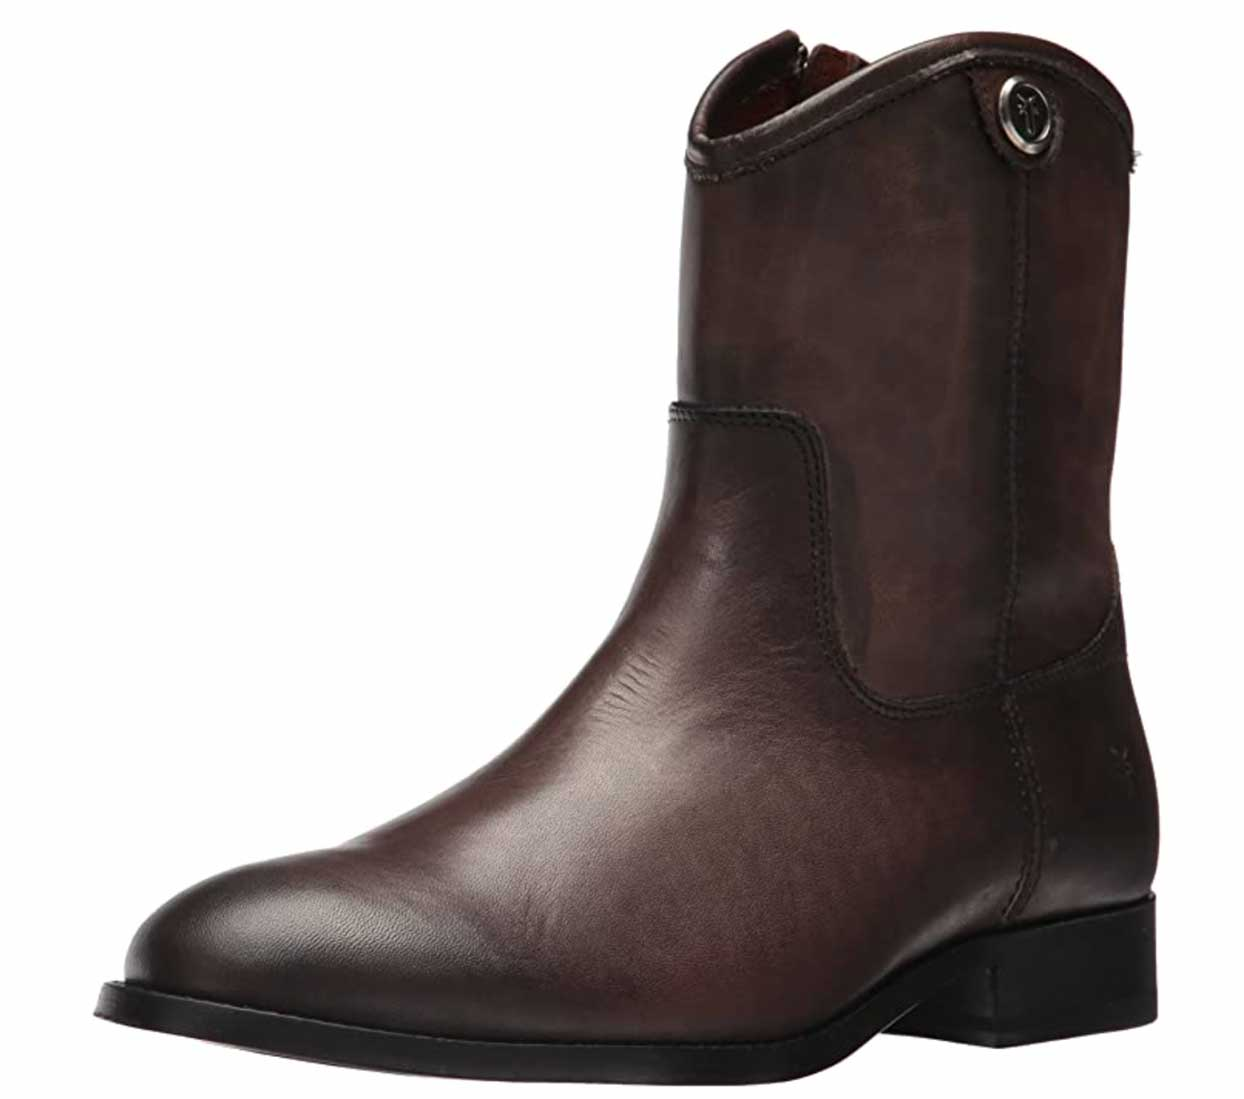 Frye Women's Melissa Button Short Boot